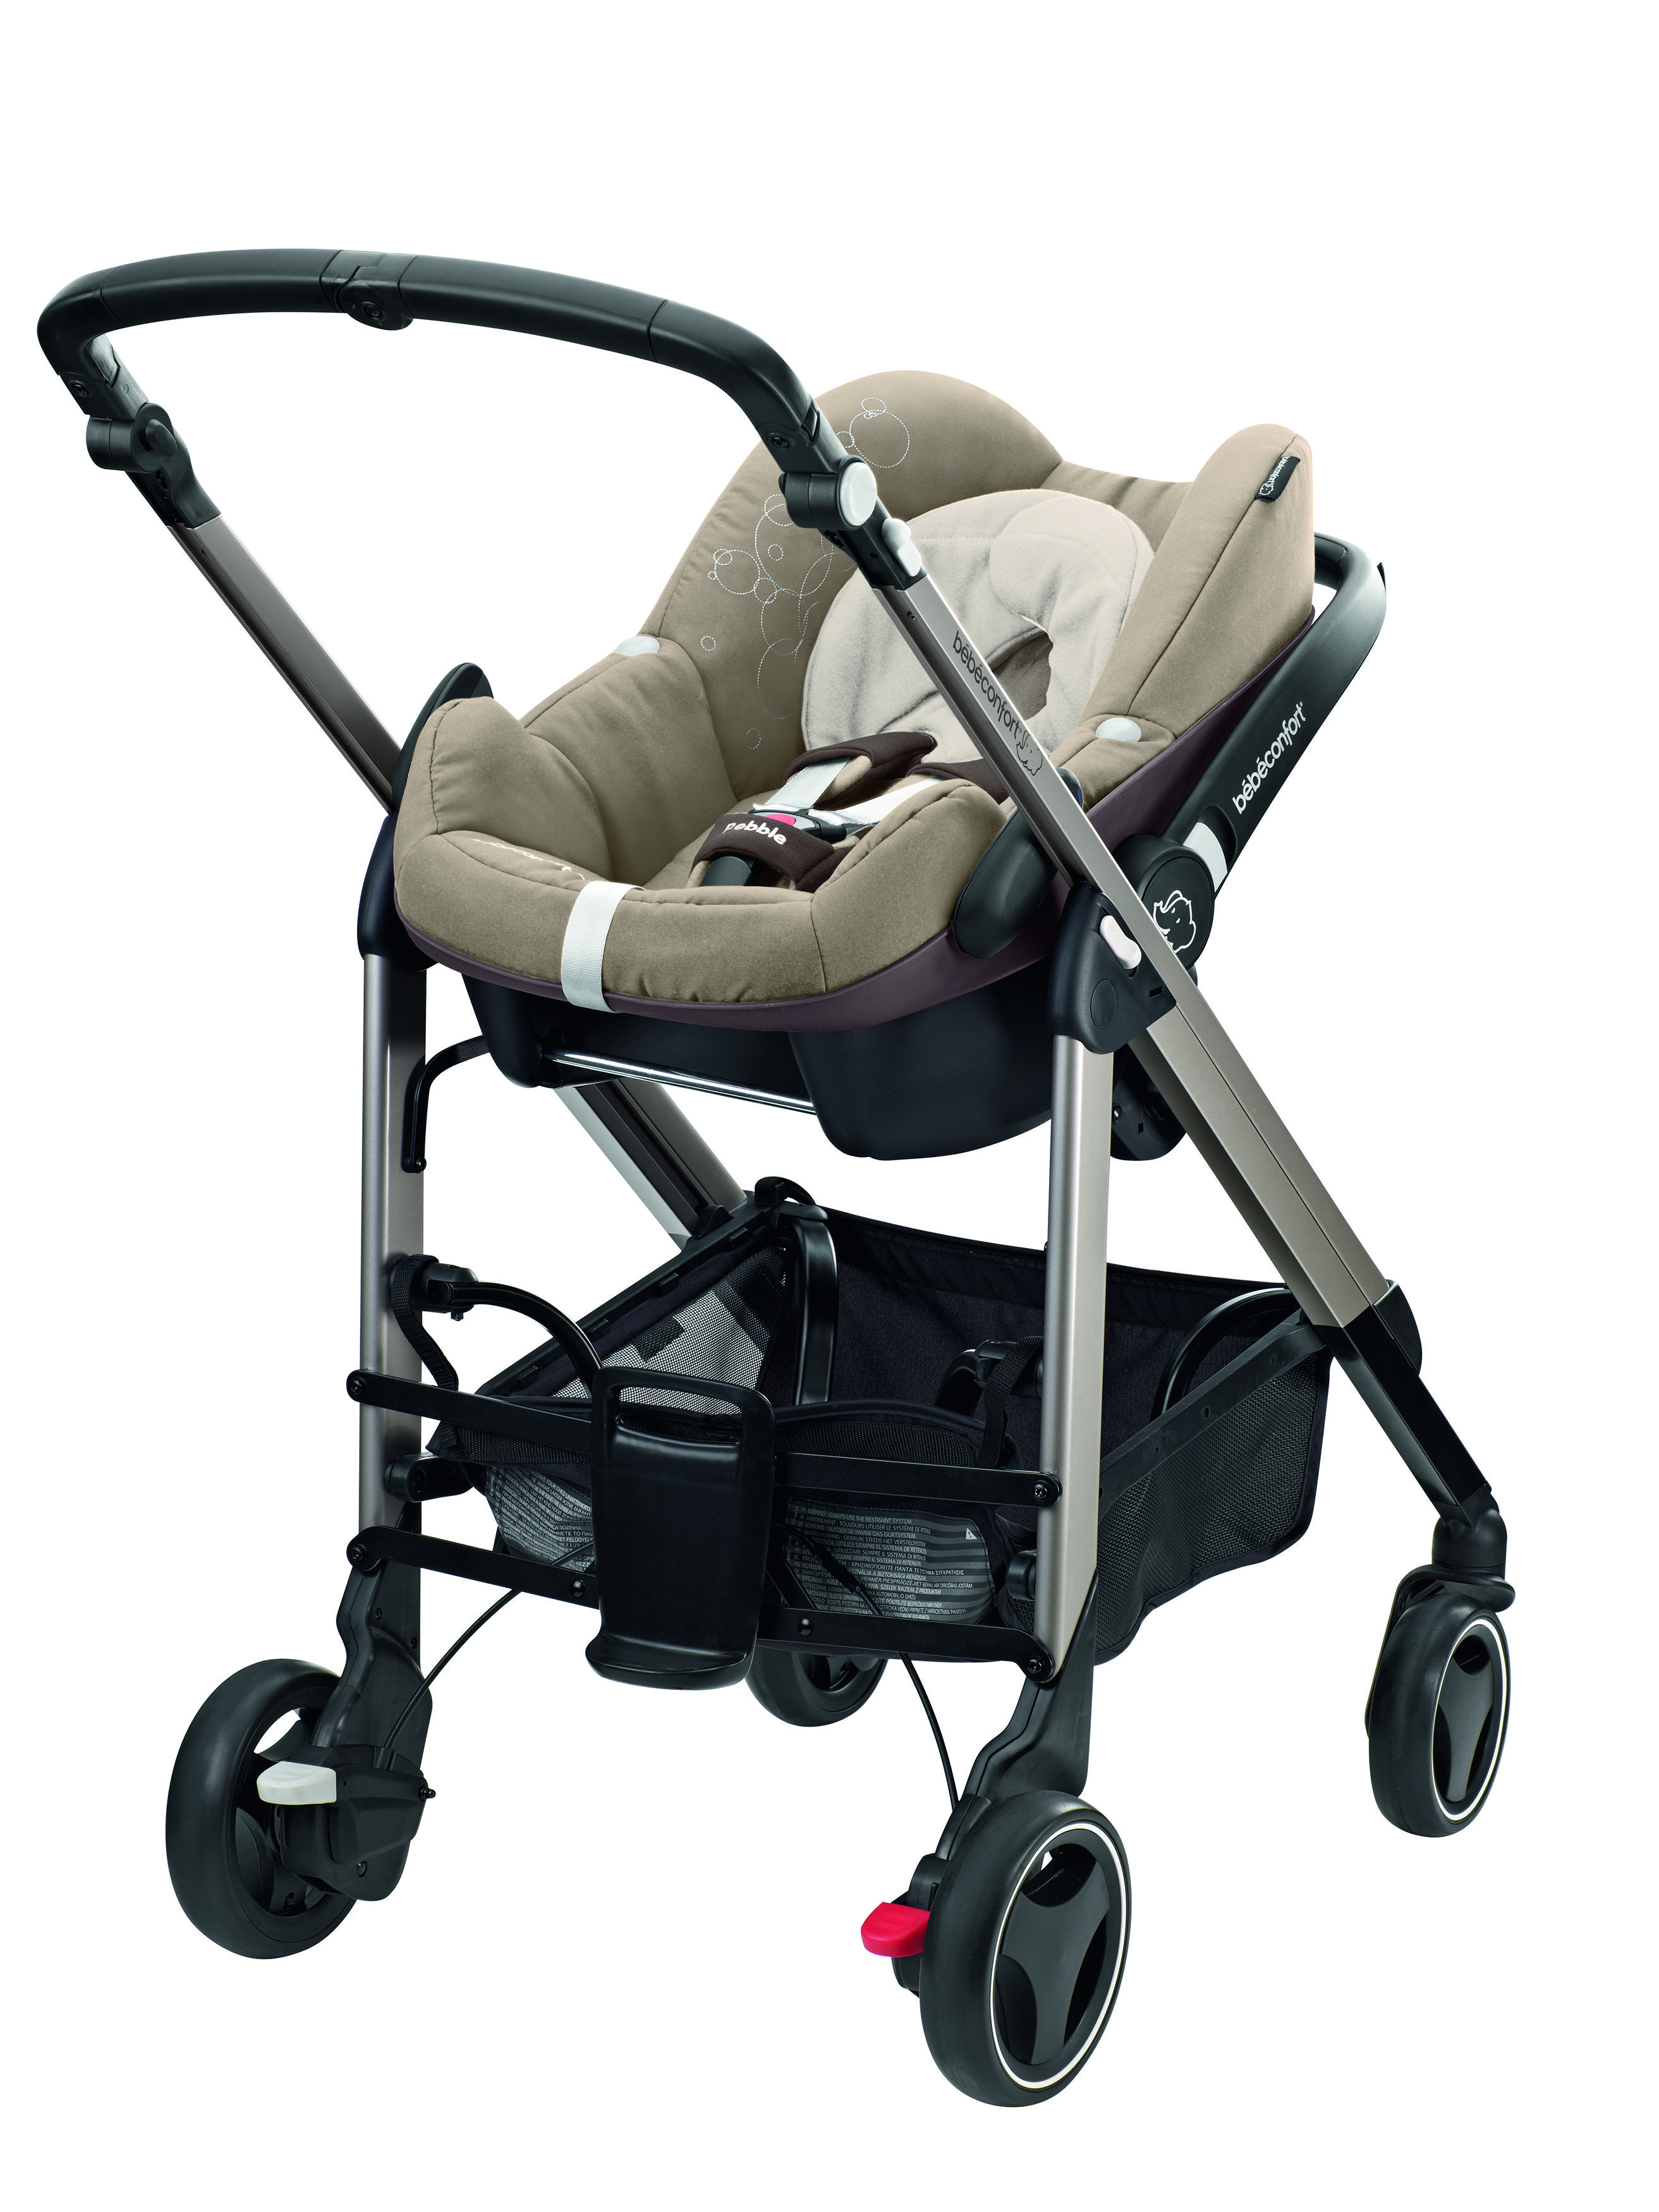 Loola&Pebble New baby products, Maxi cosi, Baby strollers